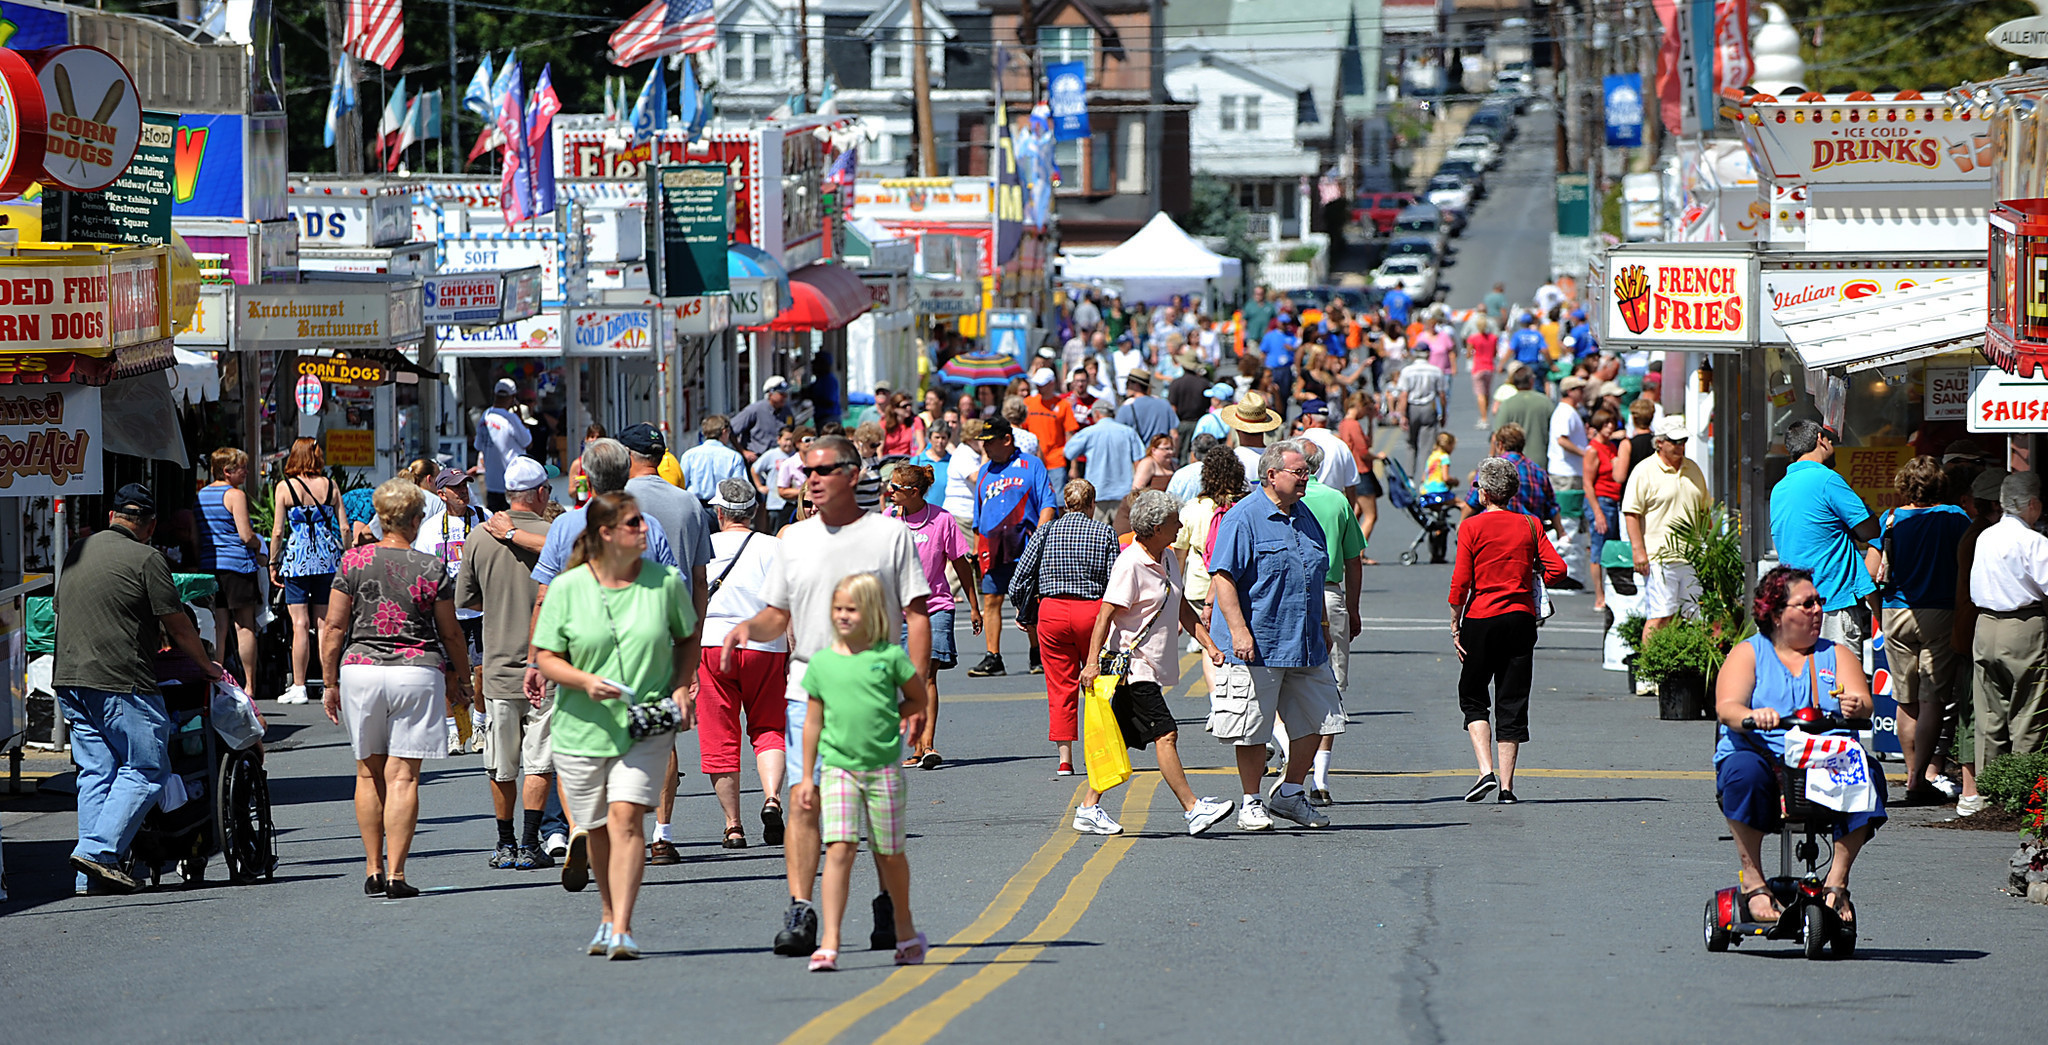 2016 Allentown Fair Guide What You Need To Know Before You Go The Morning